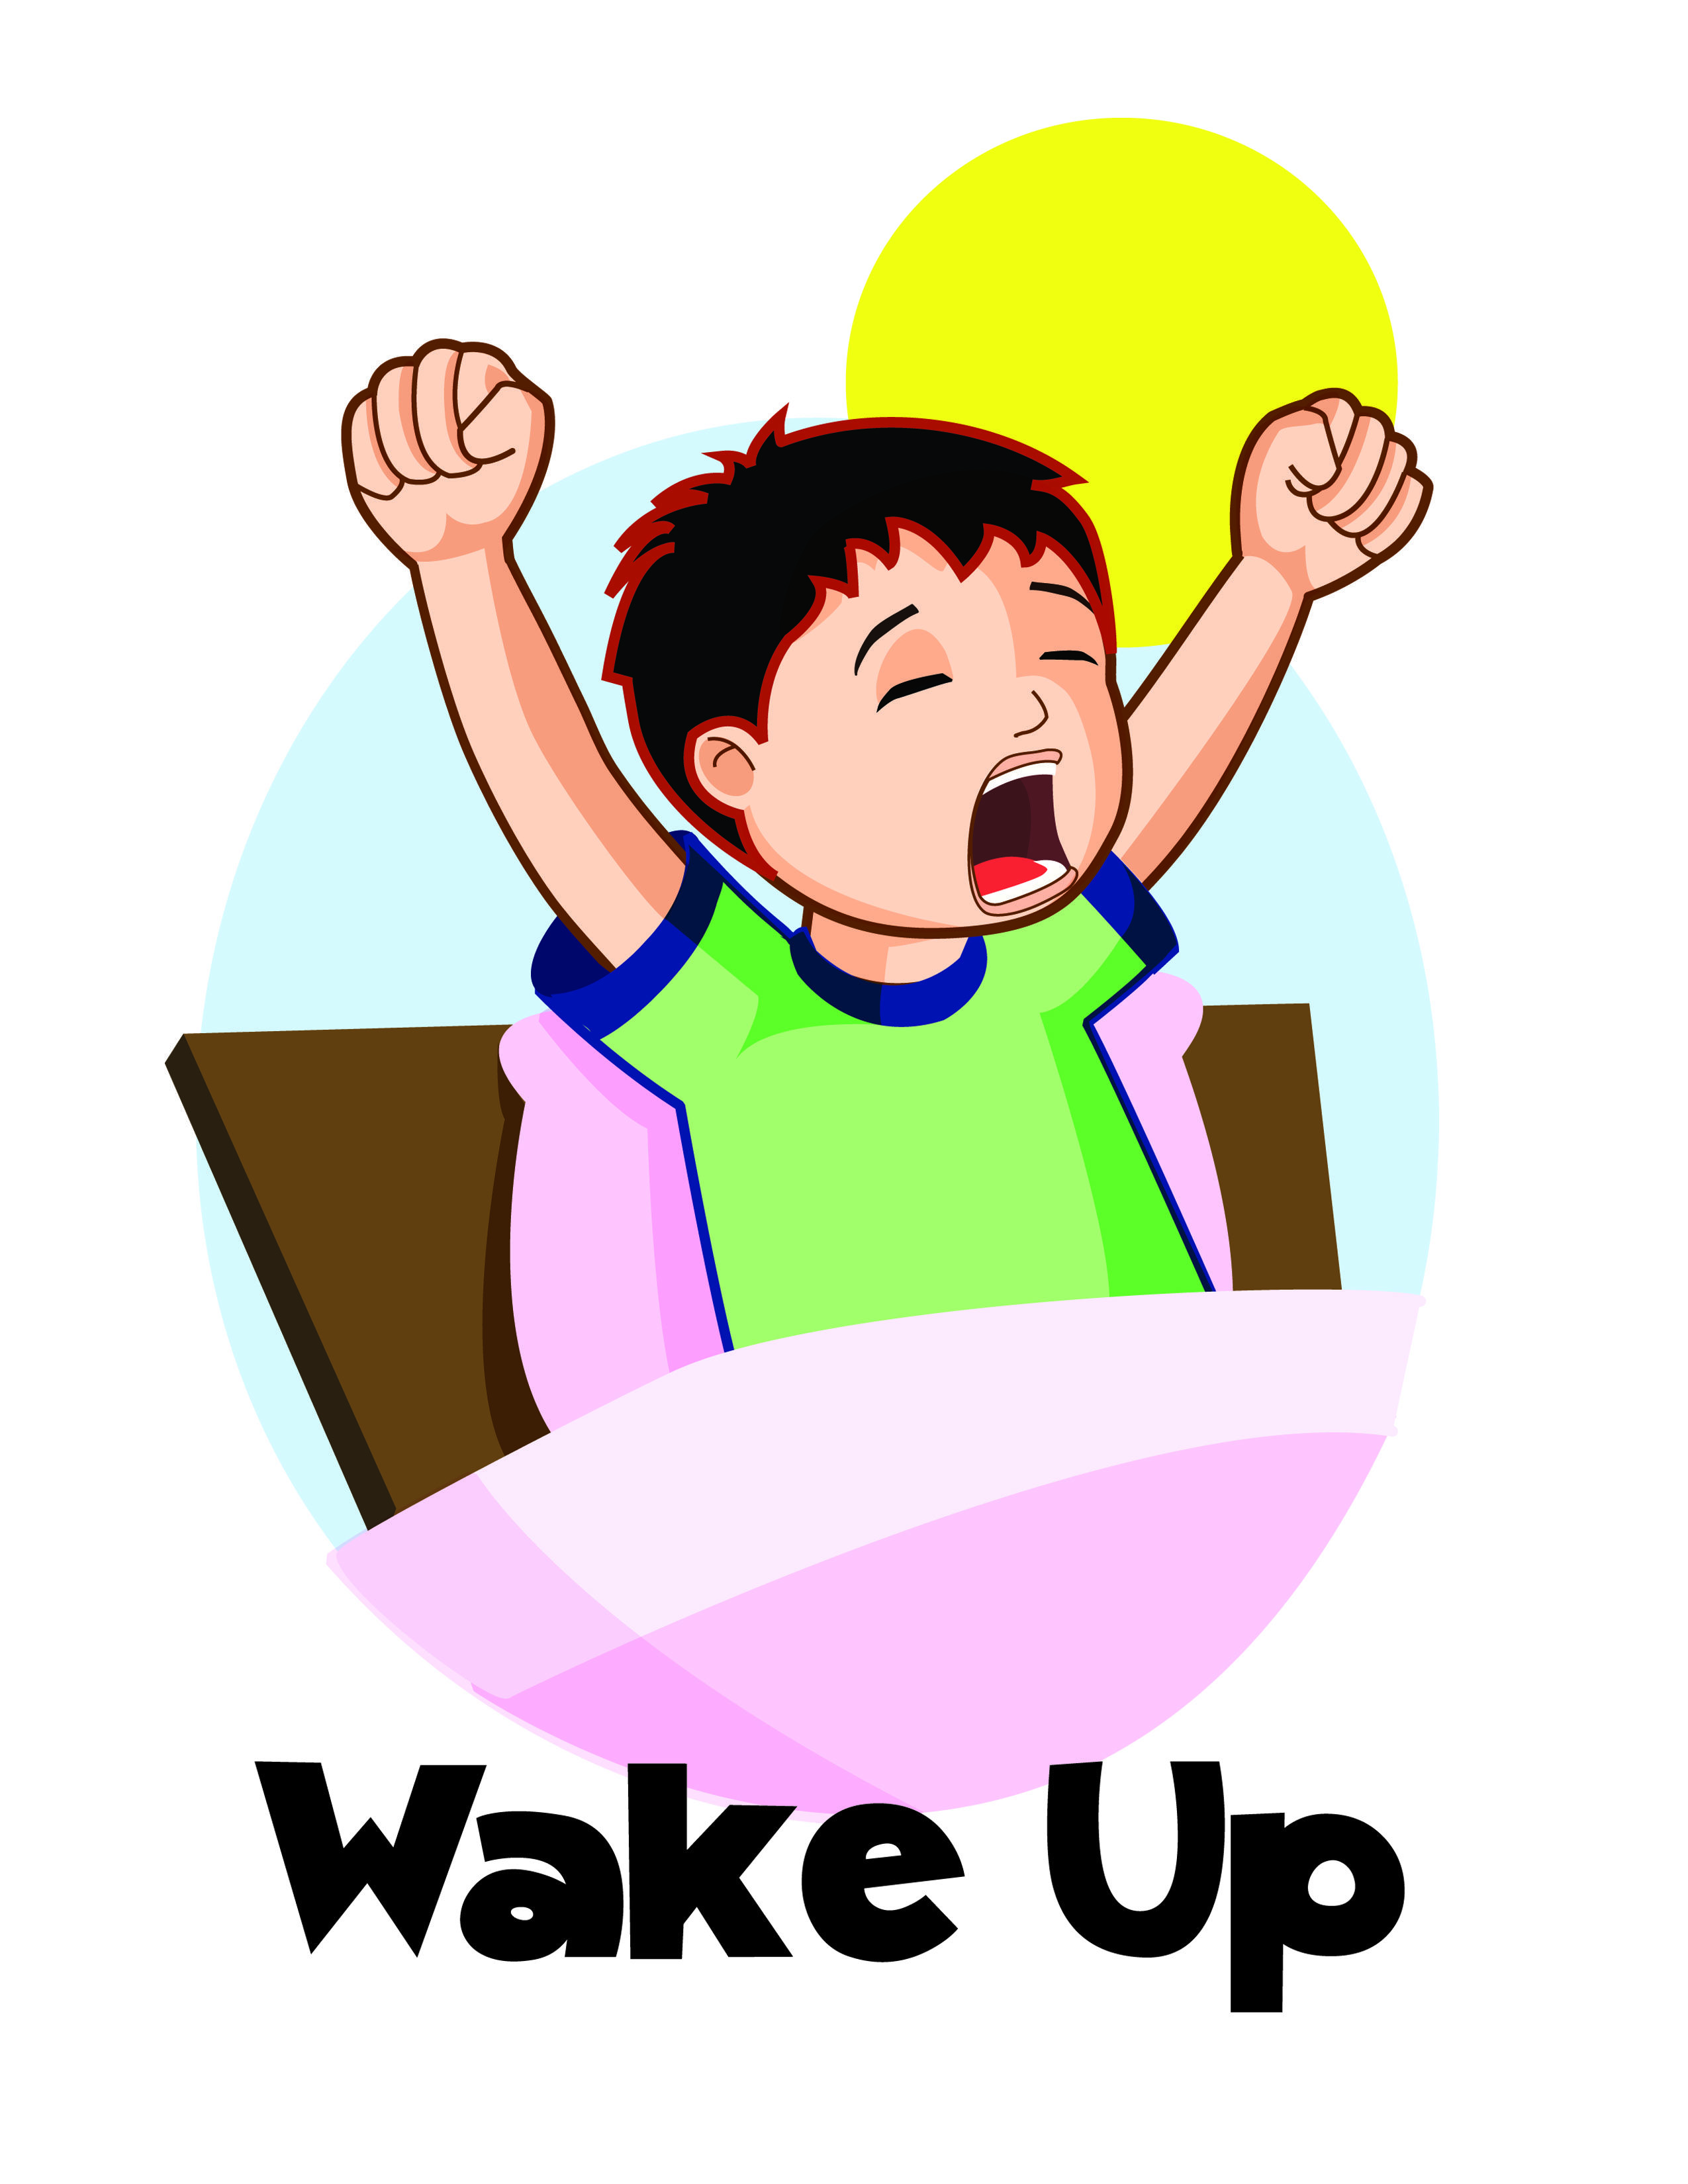 medium resolution of 11 wake up clip art free cliparts that you can download to you